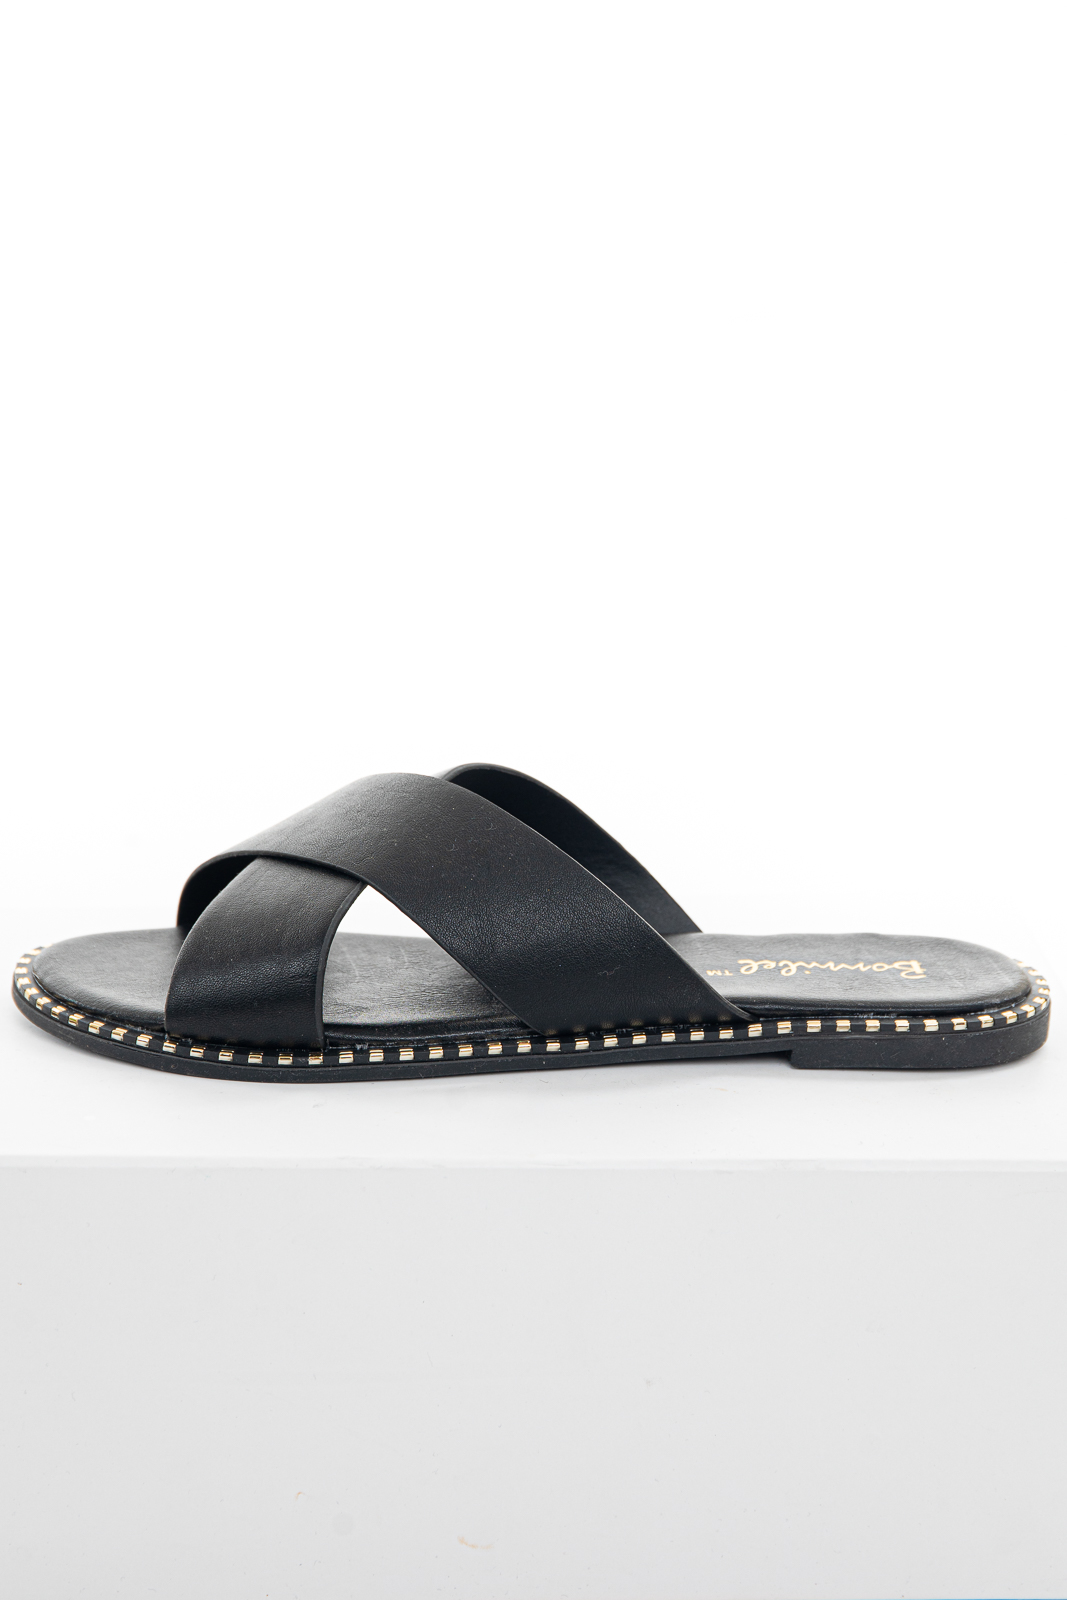 Black Criss Cross Slip On Sandals with Metallic Details